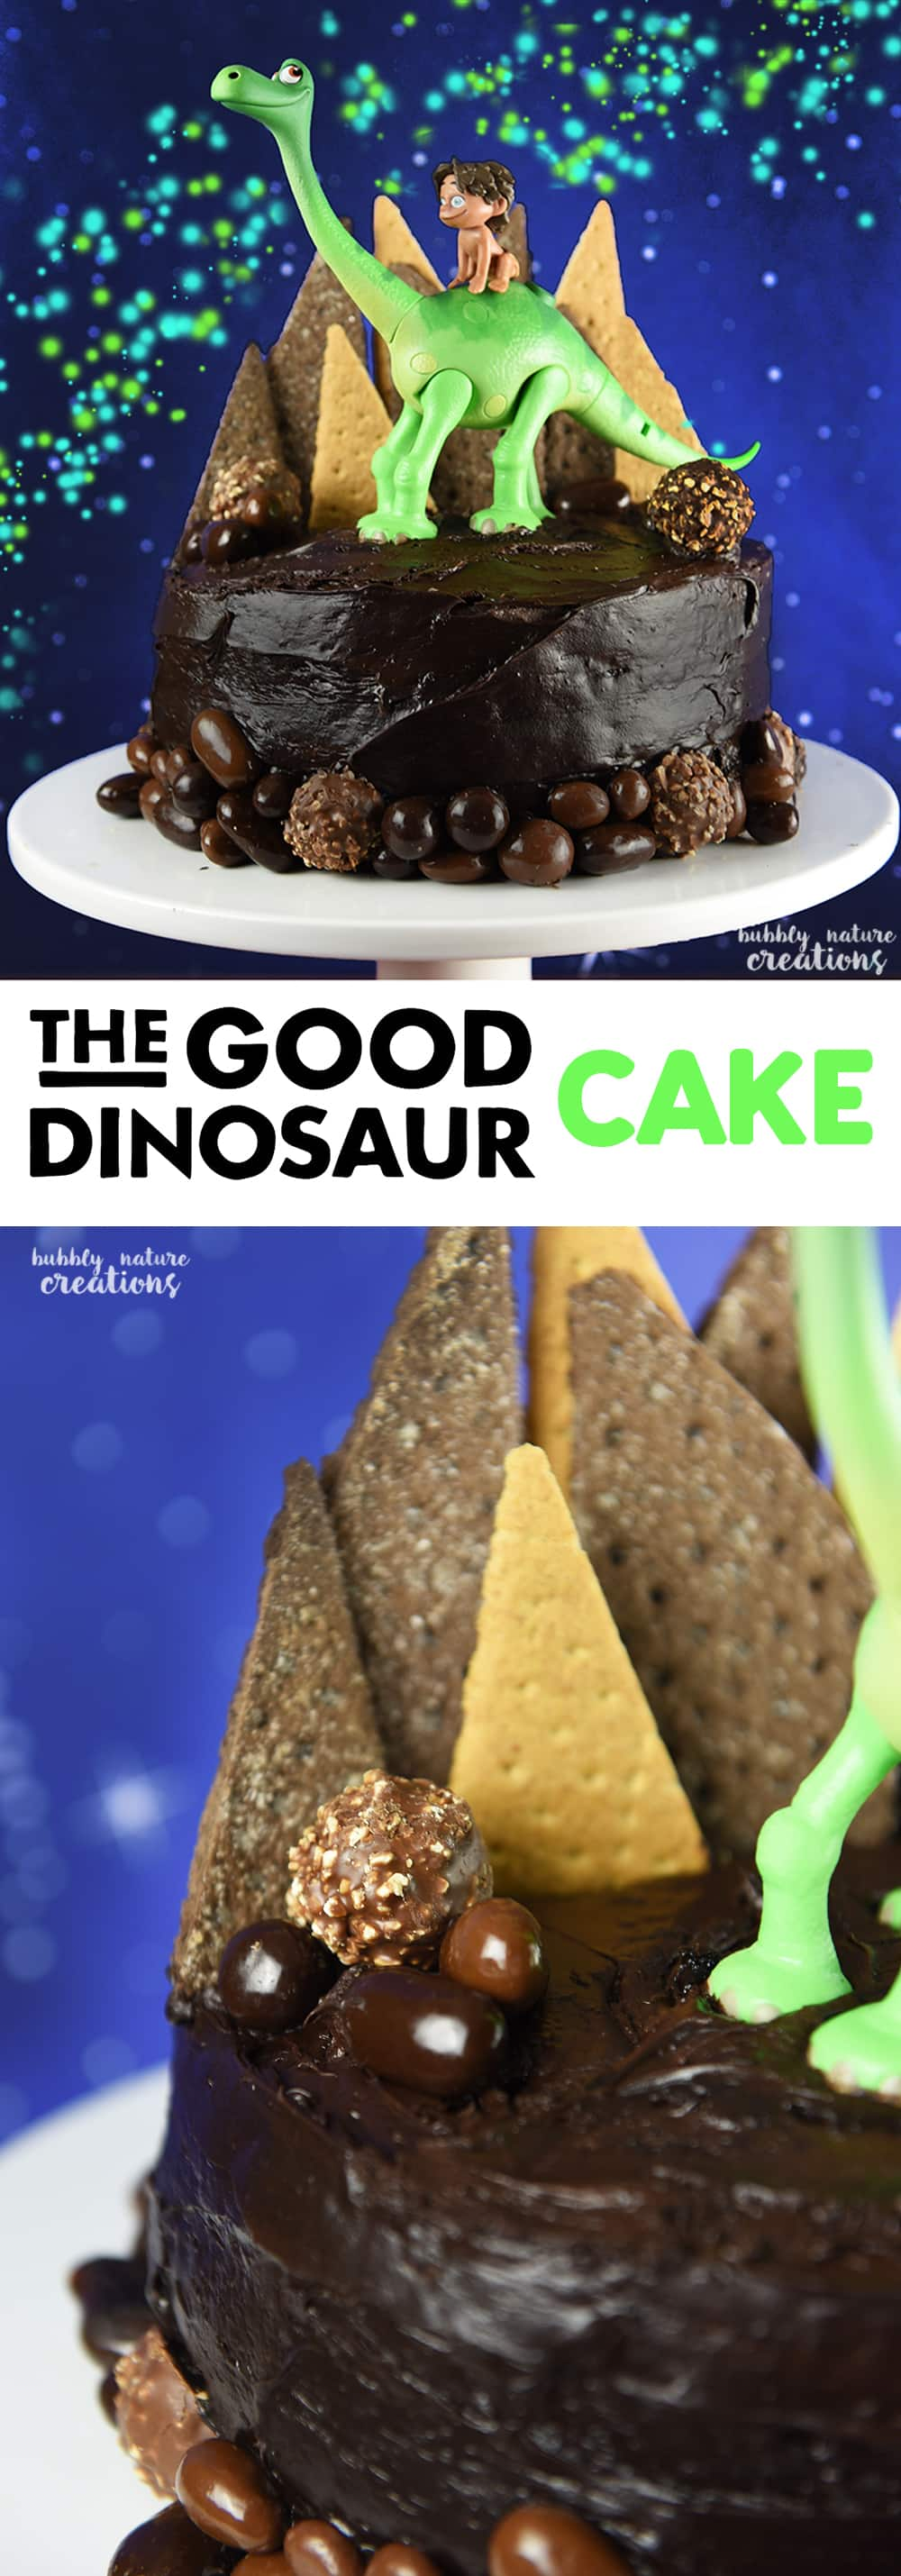 The Good Dinosaur Cake is easy to make and does not require any special tools for decorating!  Perfect for any Disney The Good Dinosaur Party!